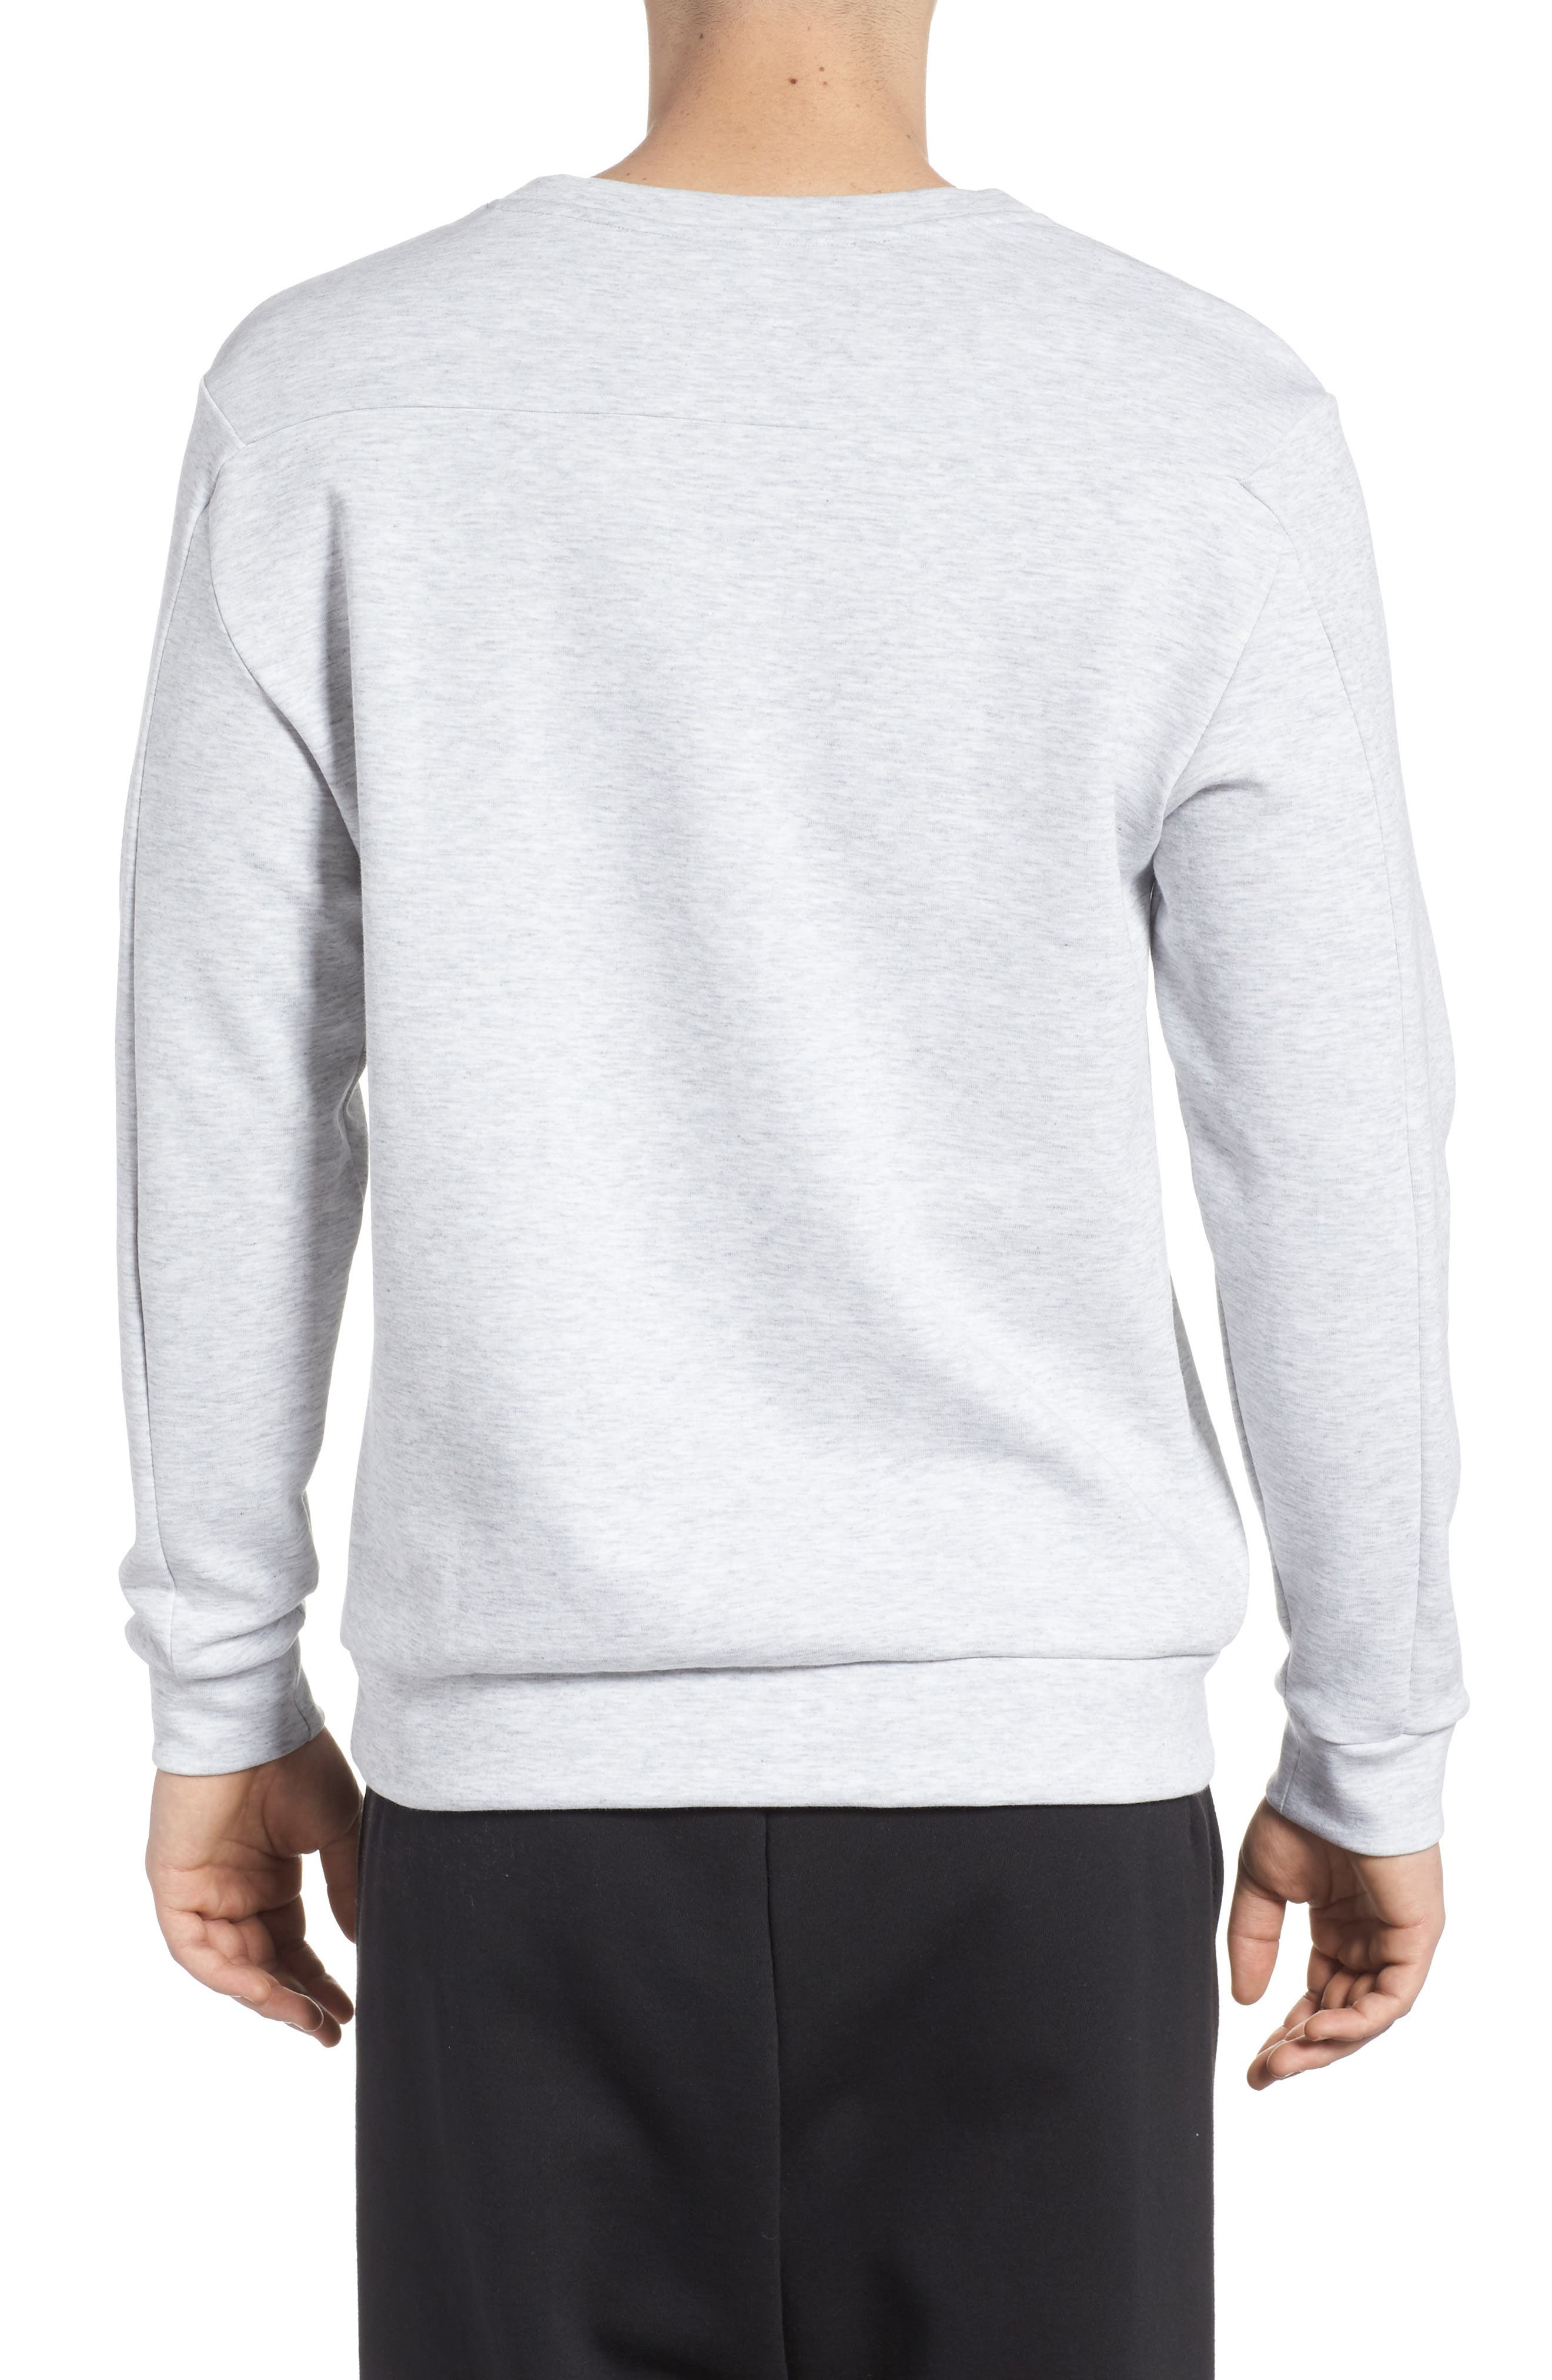 Double Sweatshirt,                             Alternate thumbnail 2, color,                             Light Grey Heather